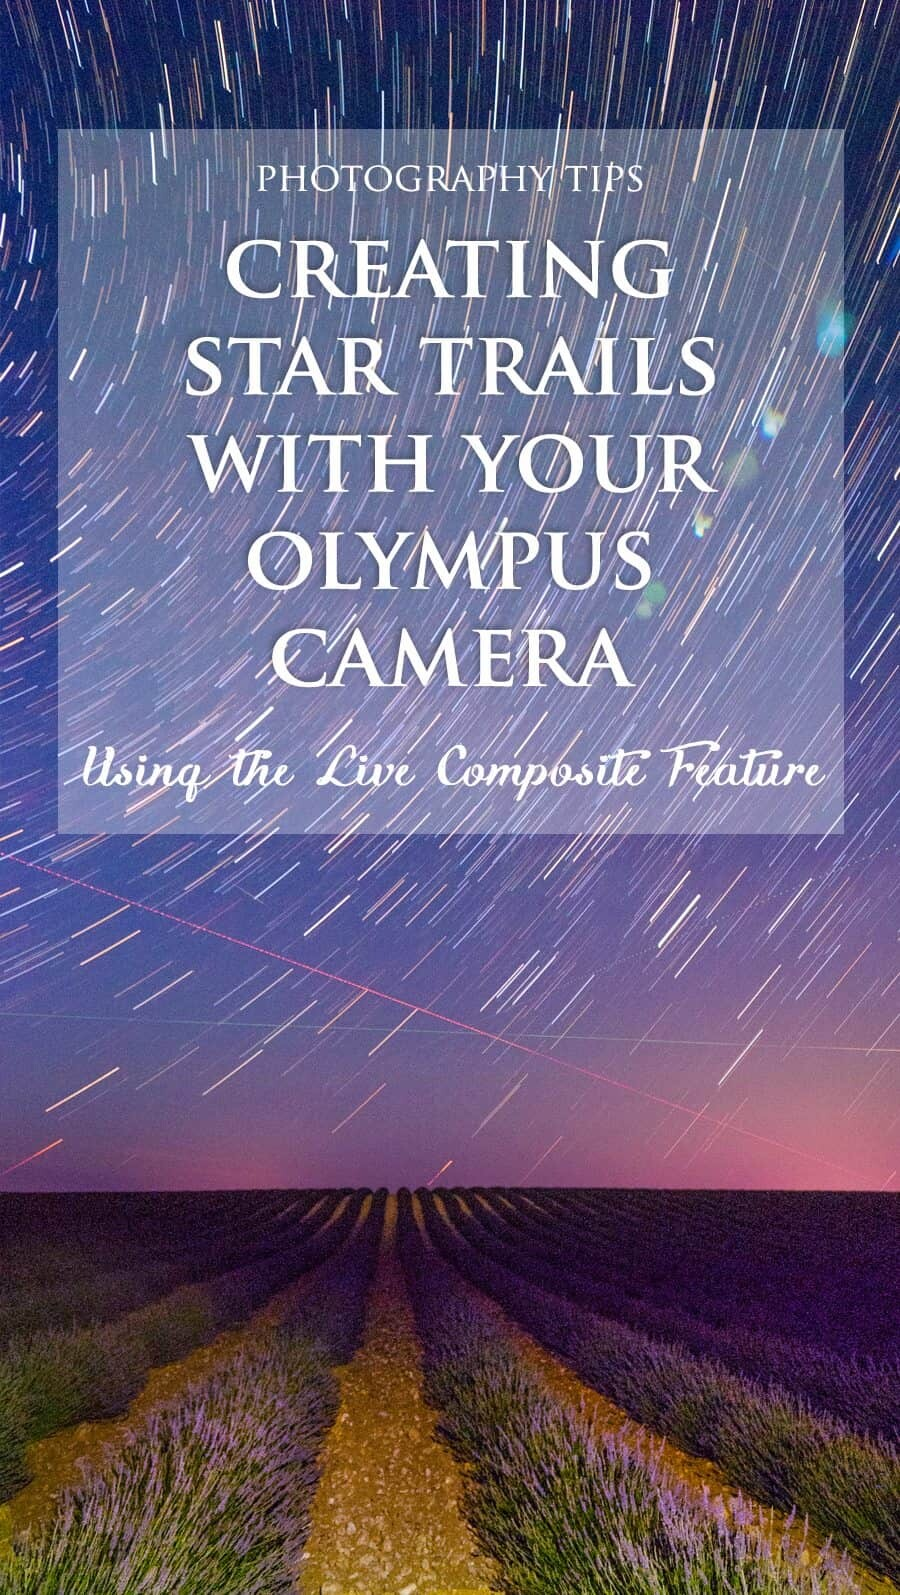 How to take Star Trail photos with Olympus camera